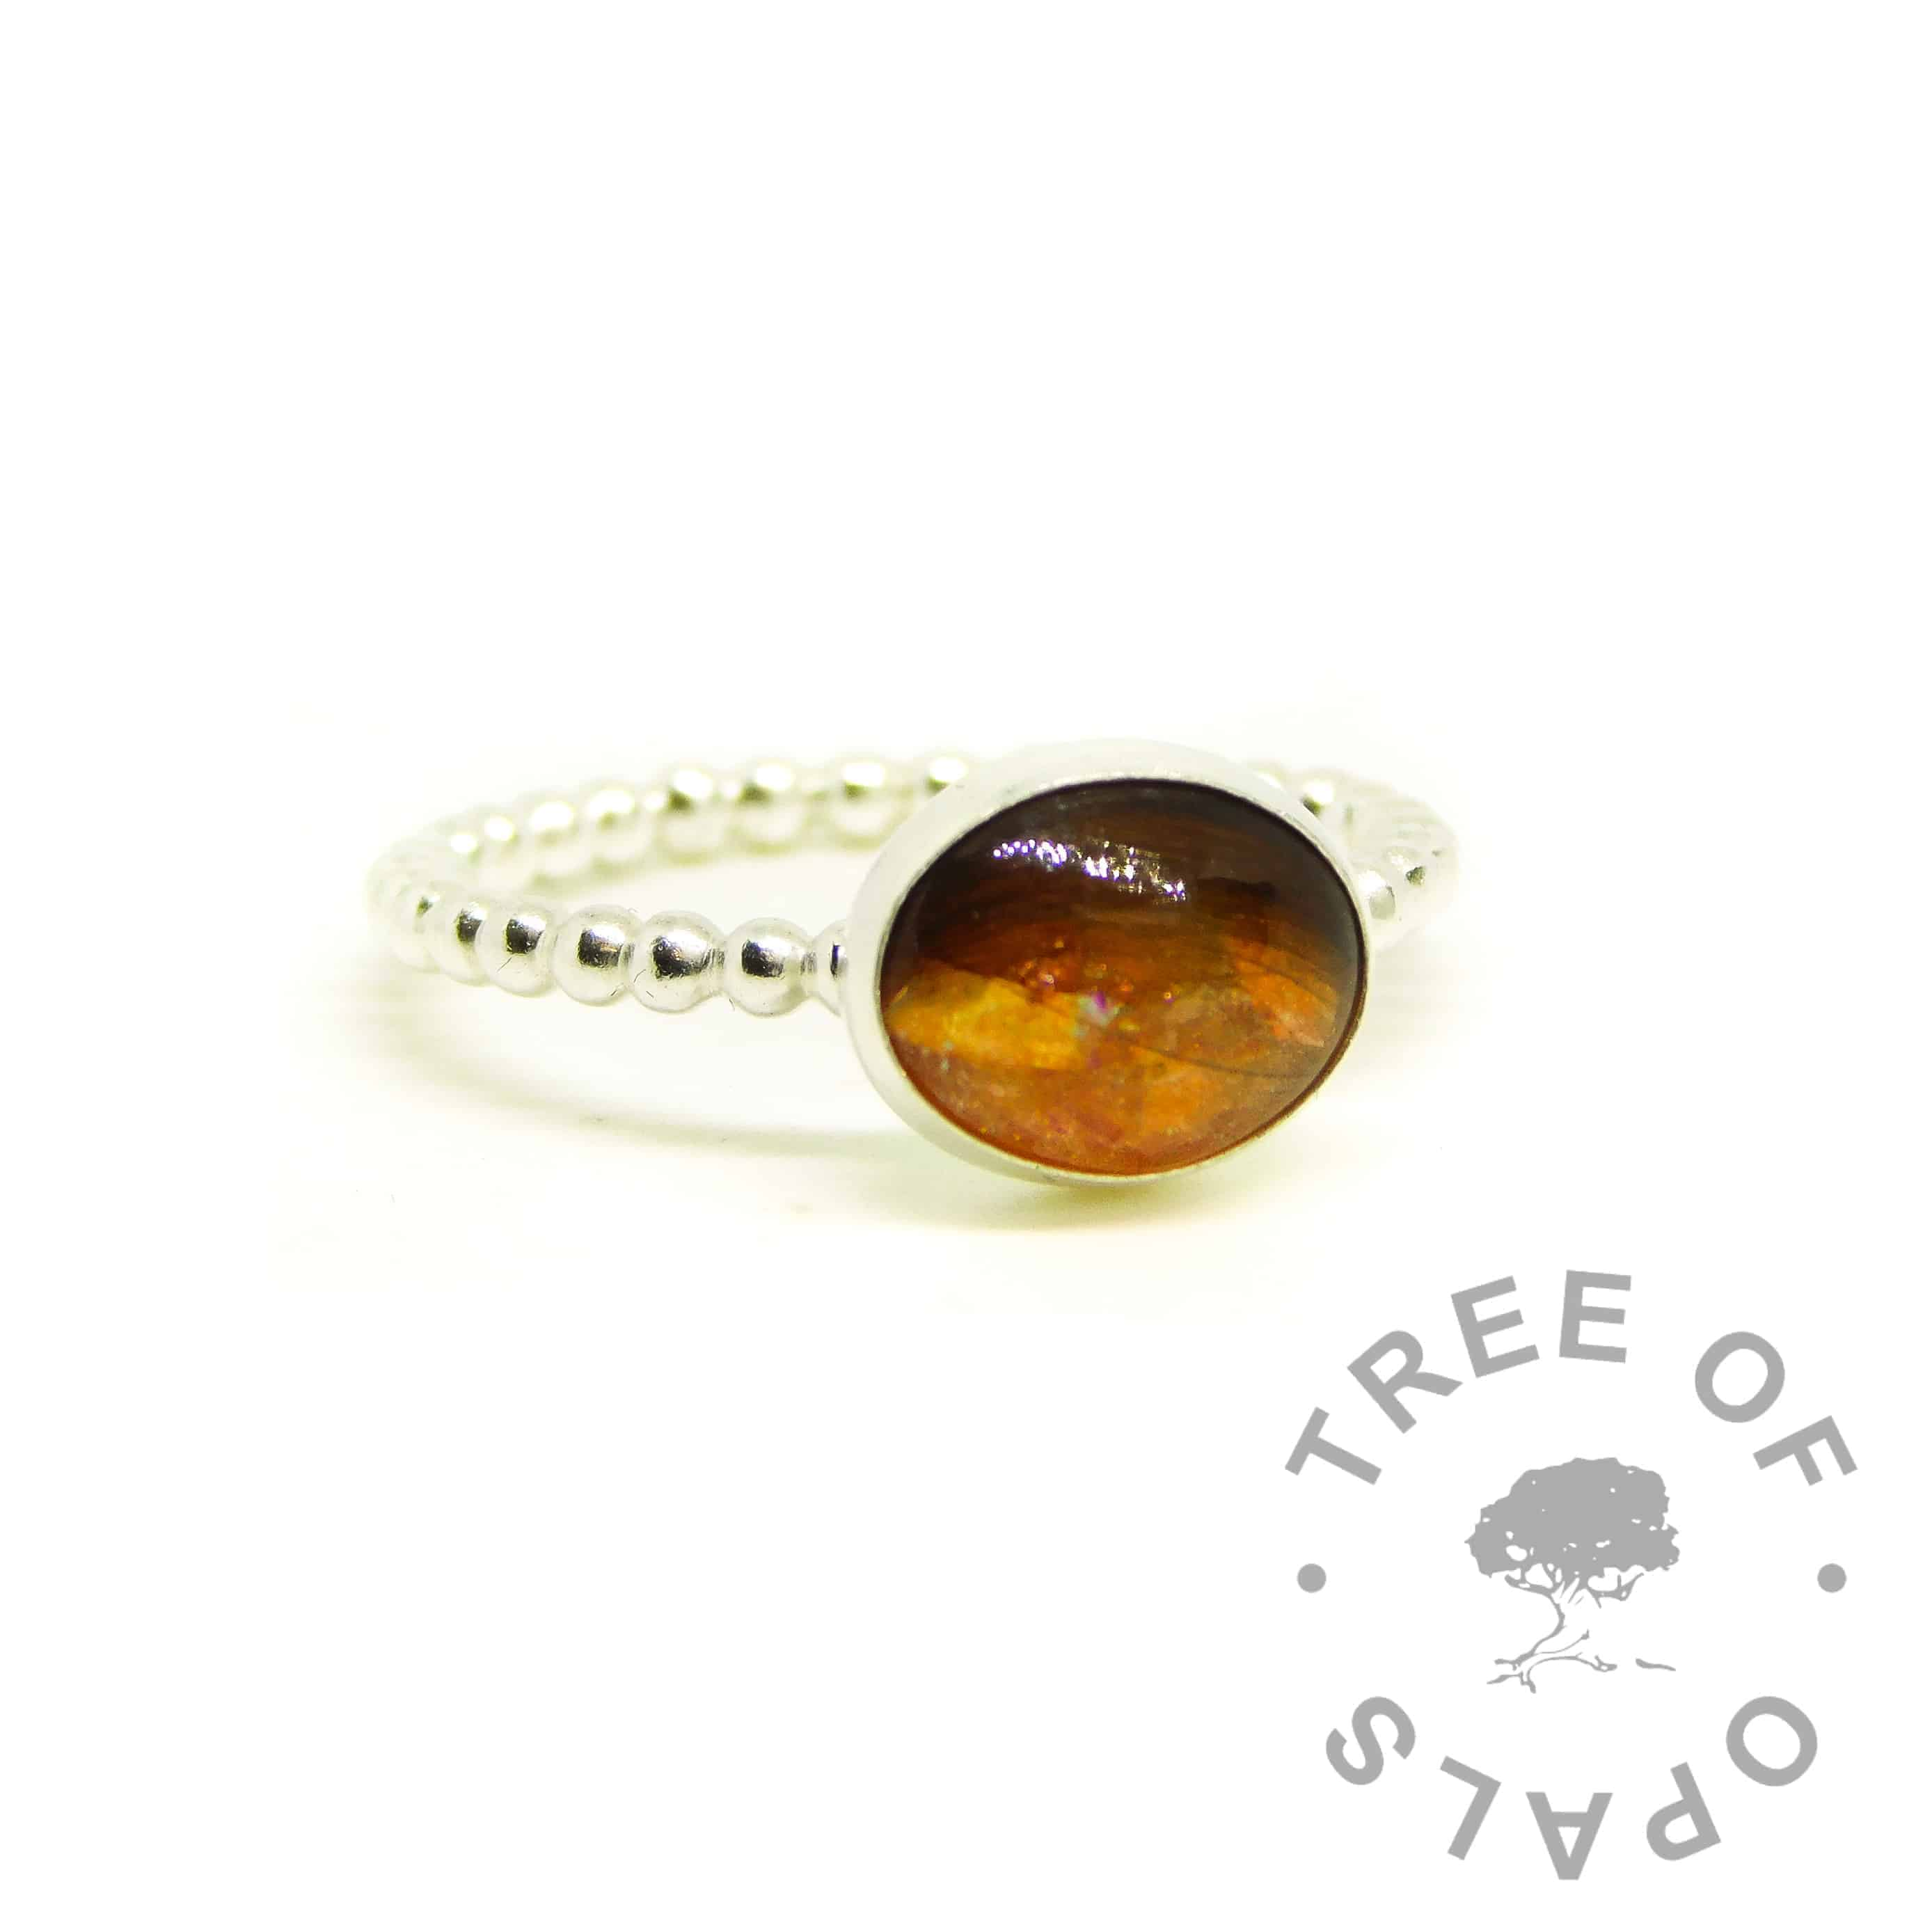 orange hair ring on bubble wire band. Tangerine orange resin sparke mix